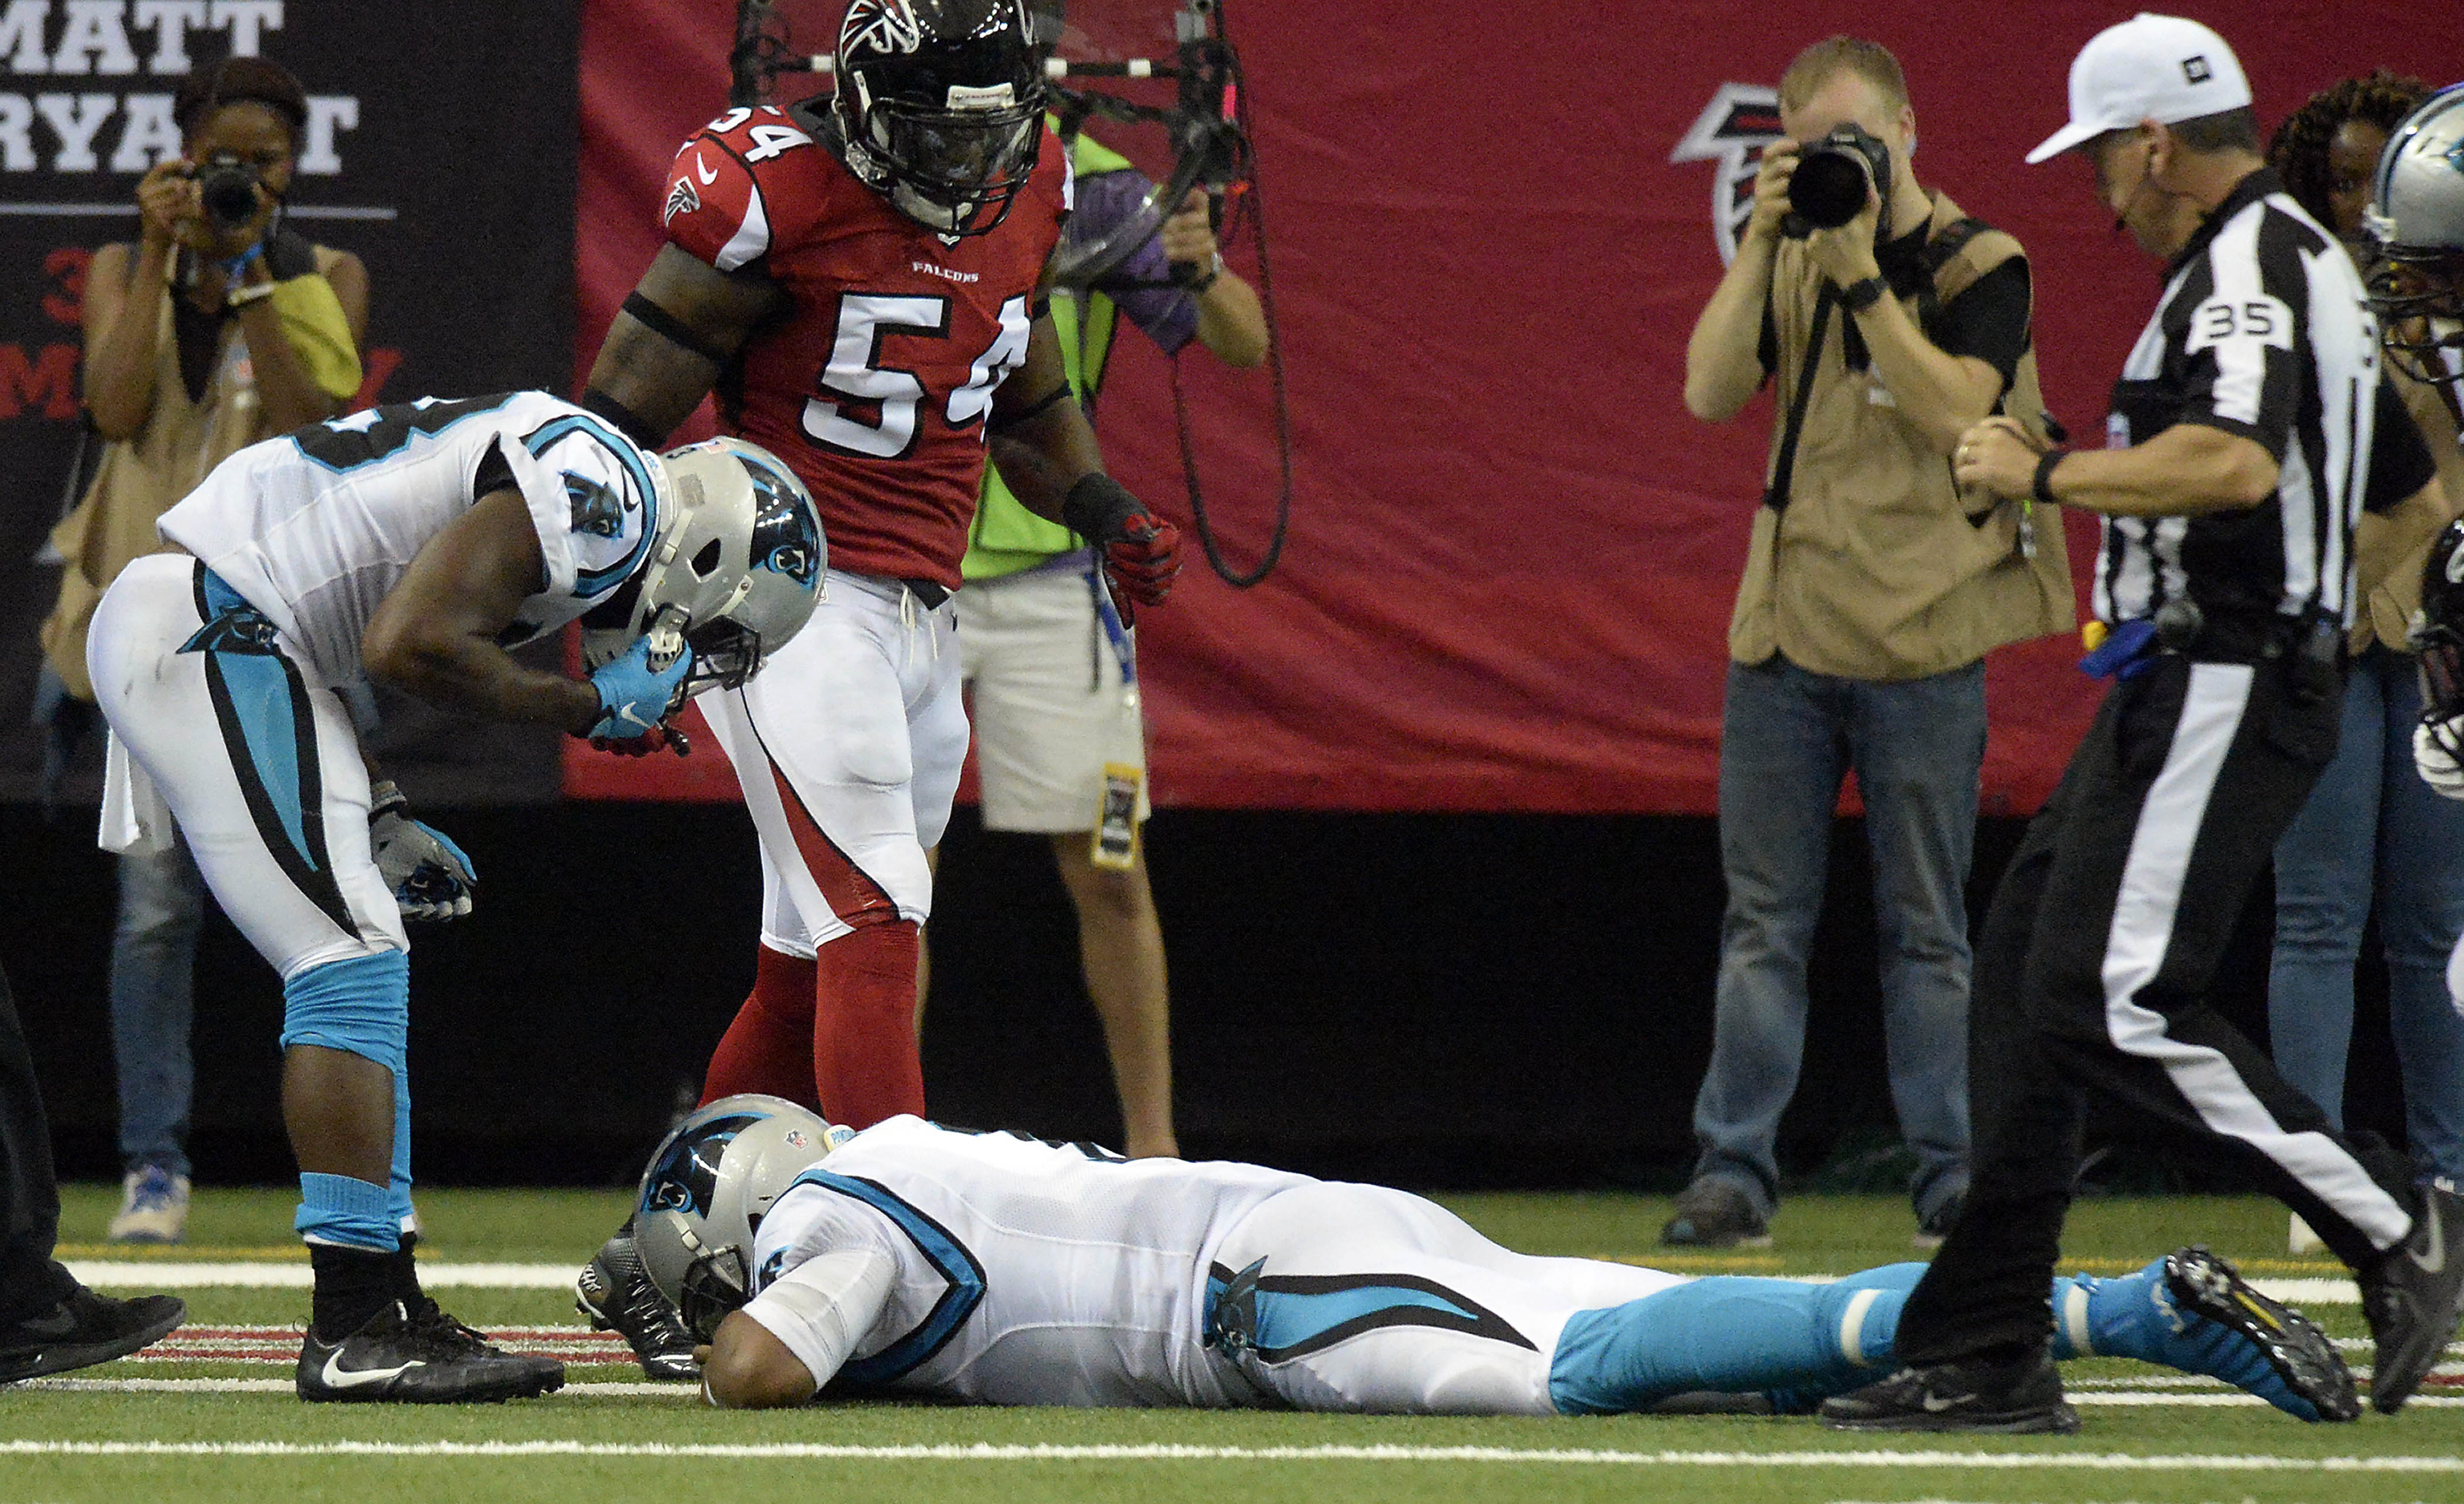 Carolina Panthers quarterback Cam Newton lies on the turf as running back Fozzy Whittaker (43) referee John Hussey (35), and Atlanta Falcons defensive end O'Brien Schofield (54) look down at him after a hit during a two-point conversion in the second half